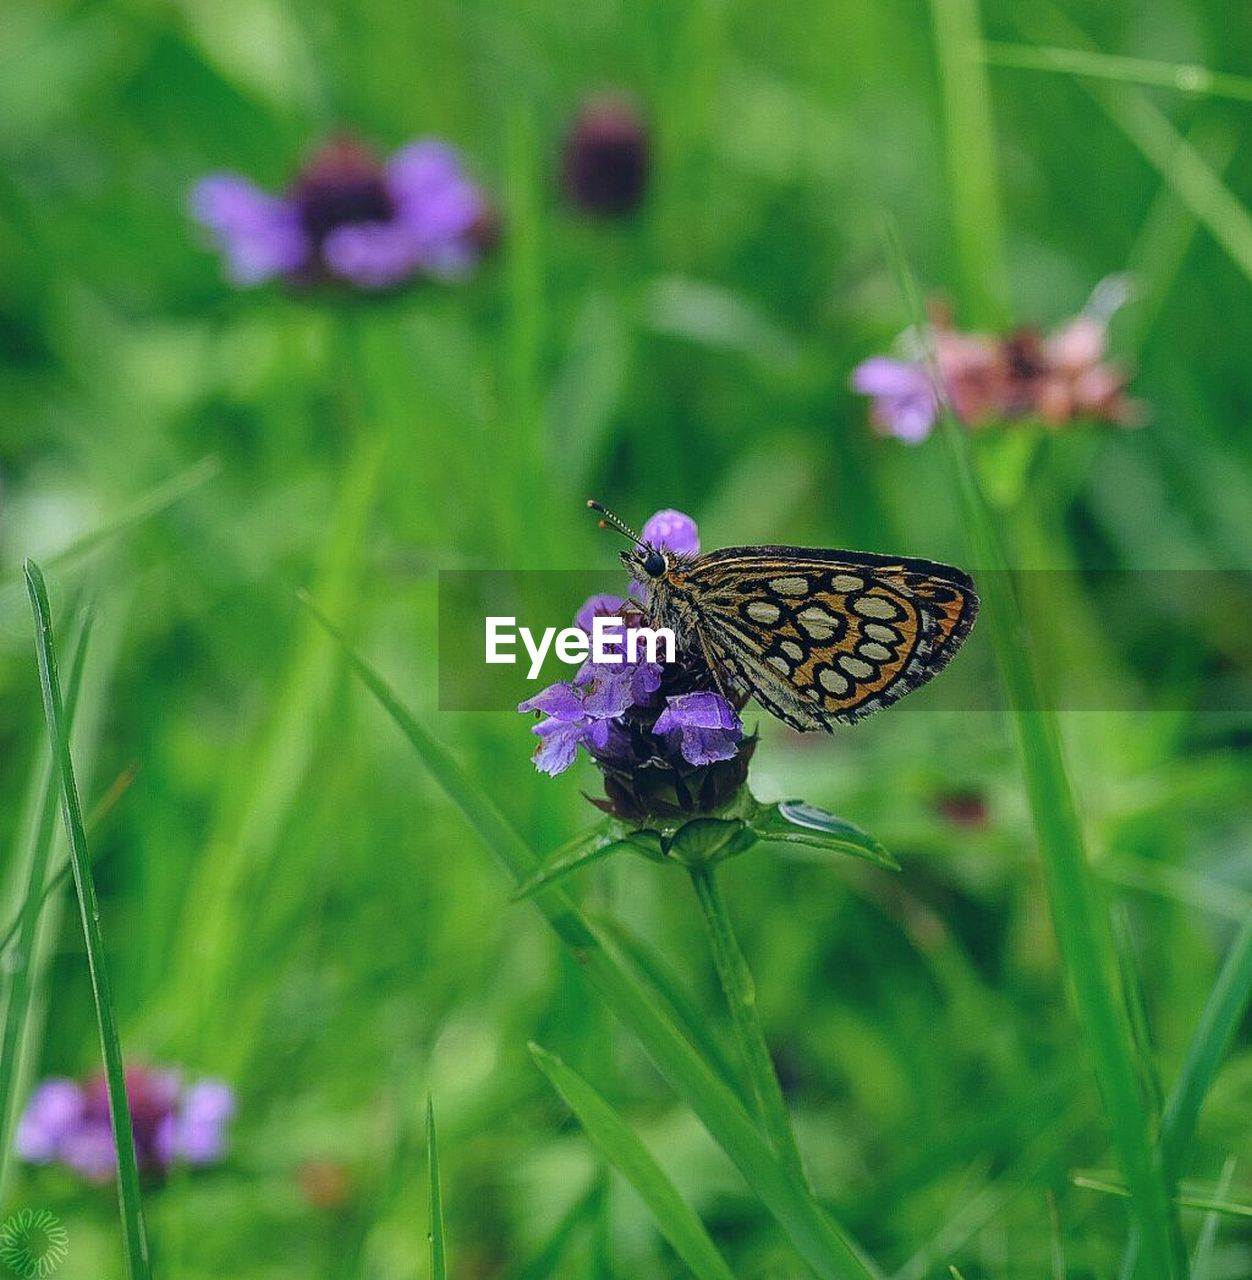 flower, insect, animal themes, one animal, animals in the wild, fragility, nature, beauty in nature, no people, butterfly - insect, plant, focus on foreground, growth, purple, outdoors, day, butterfly, grass, close-up, animal wildlife, freshness, pollination, flower head